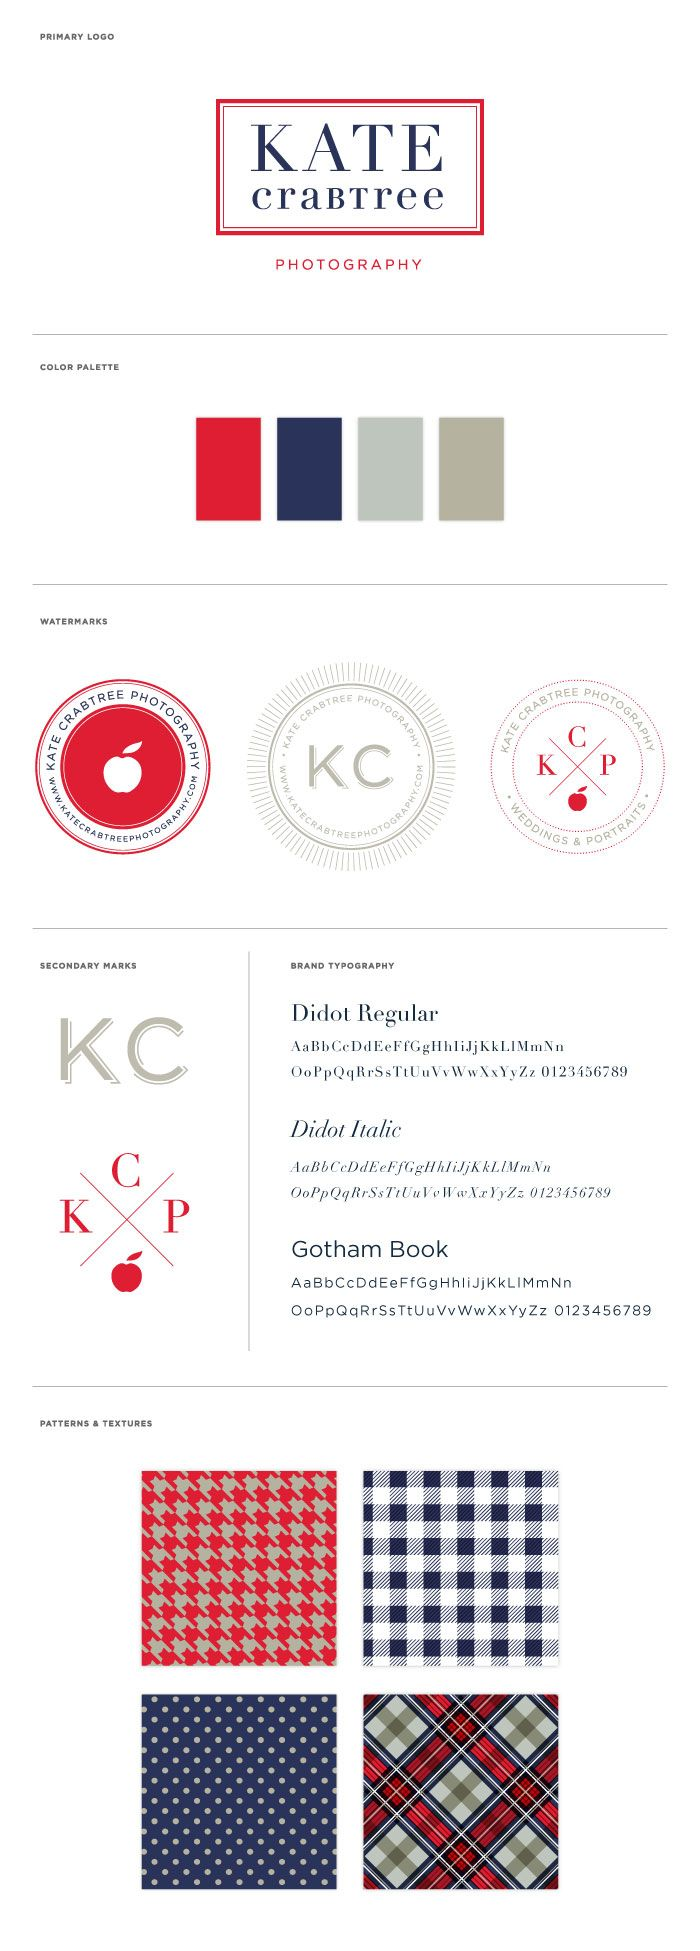 Kate Crabtree Photography Logo and Identity Design Brand Board